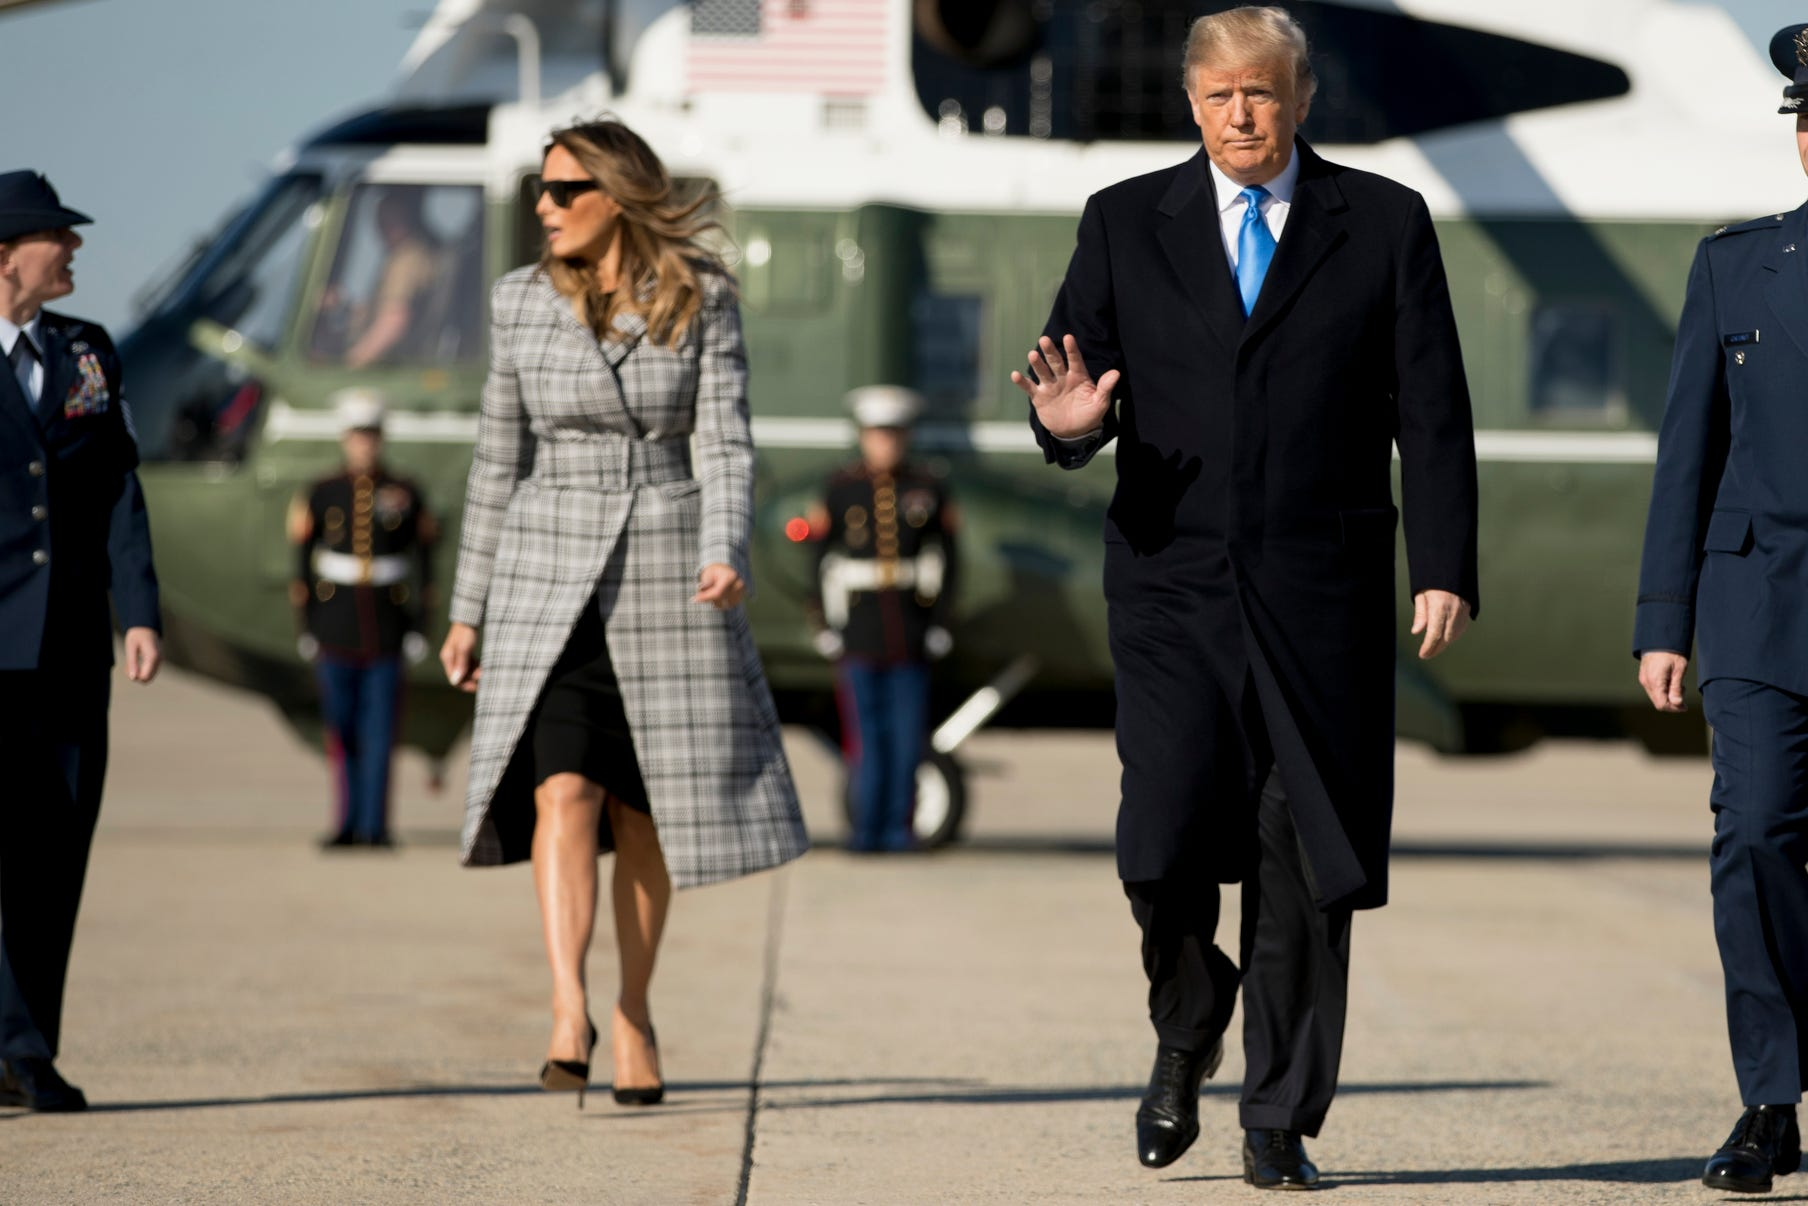 President Donald Trump waves to members of the media as he and the First Lady board Air Force One at Andrews Air Force Base, Md., to travel to Pittsburgh.